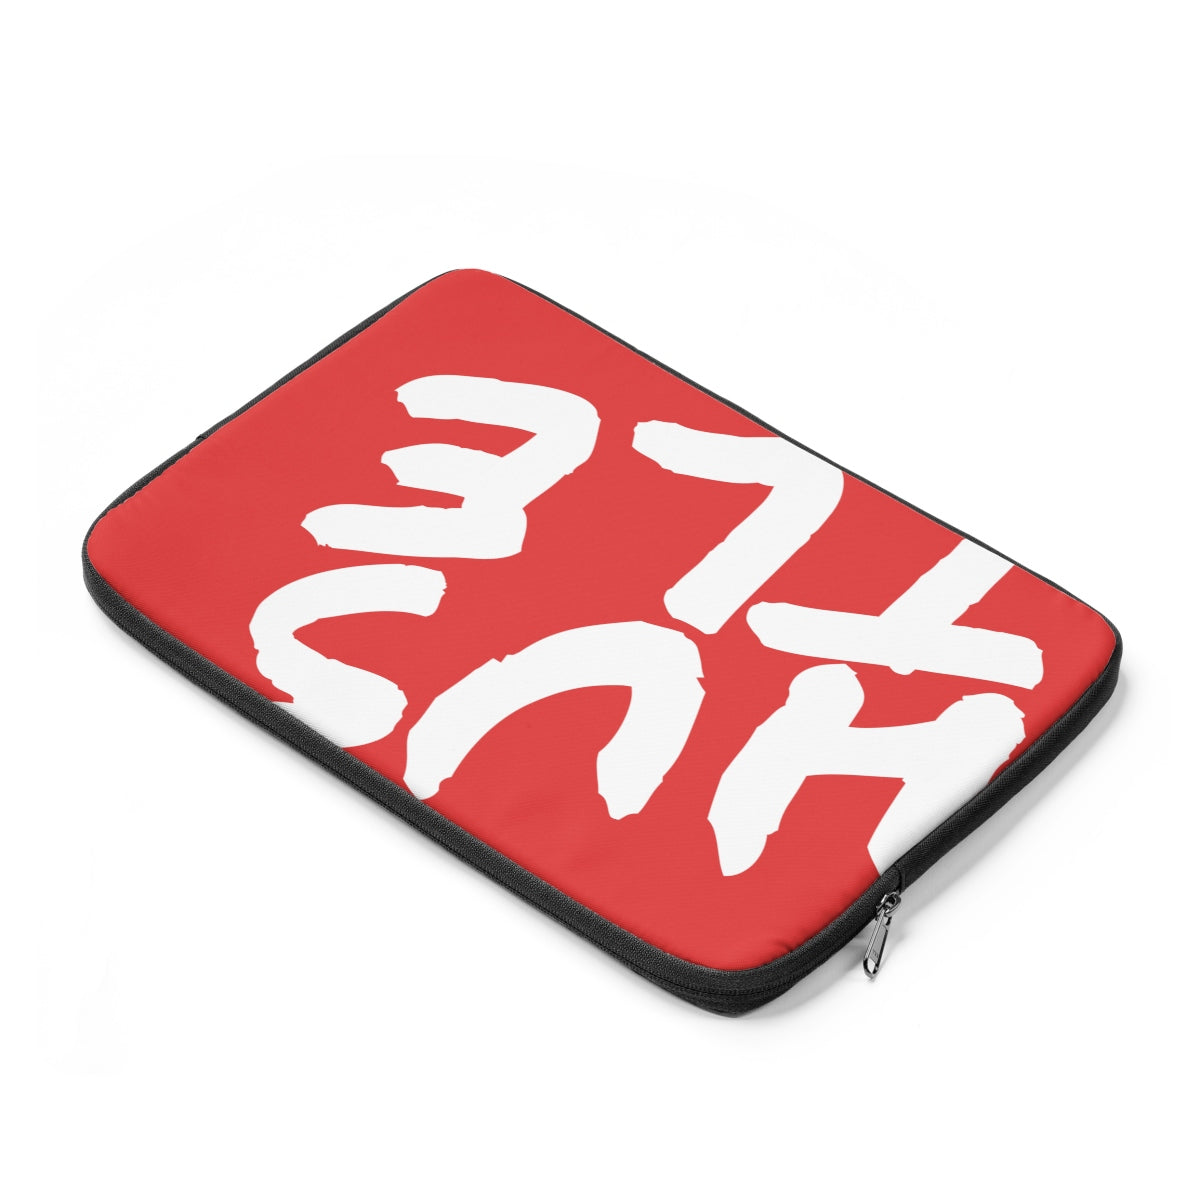 Red Laptop Sleeve 004 - Hustle Touch